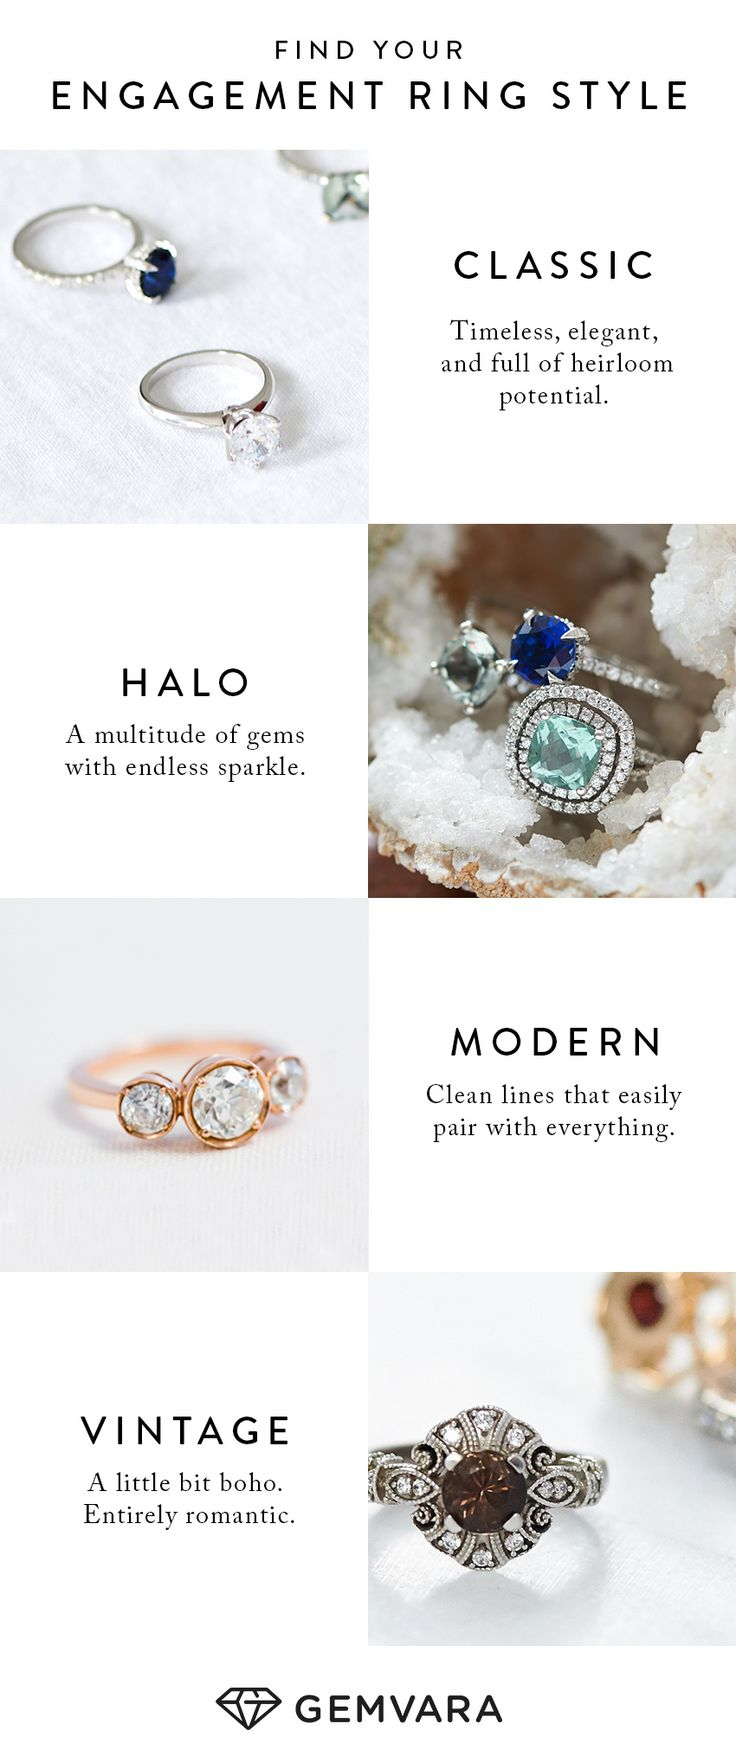 Classic. Halo. Modern. Vintage. What's your engagement ring style?